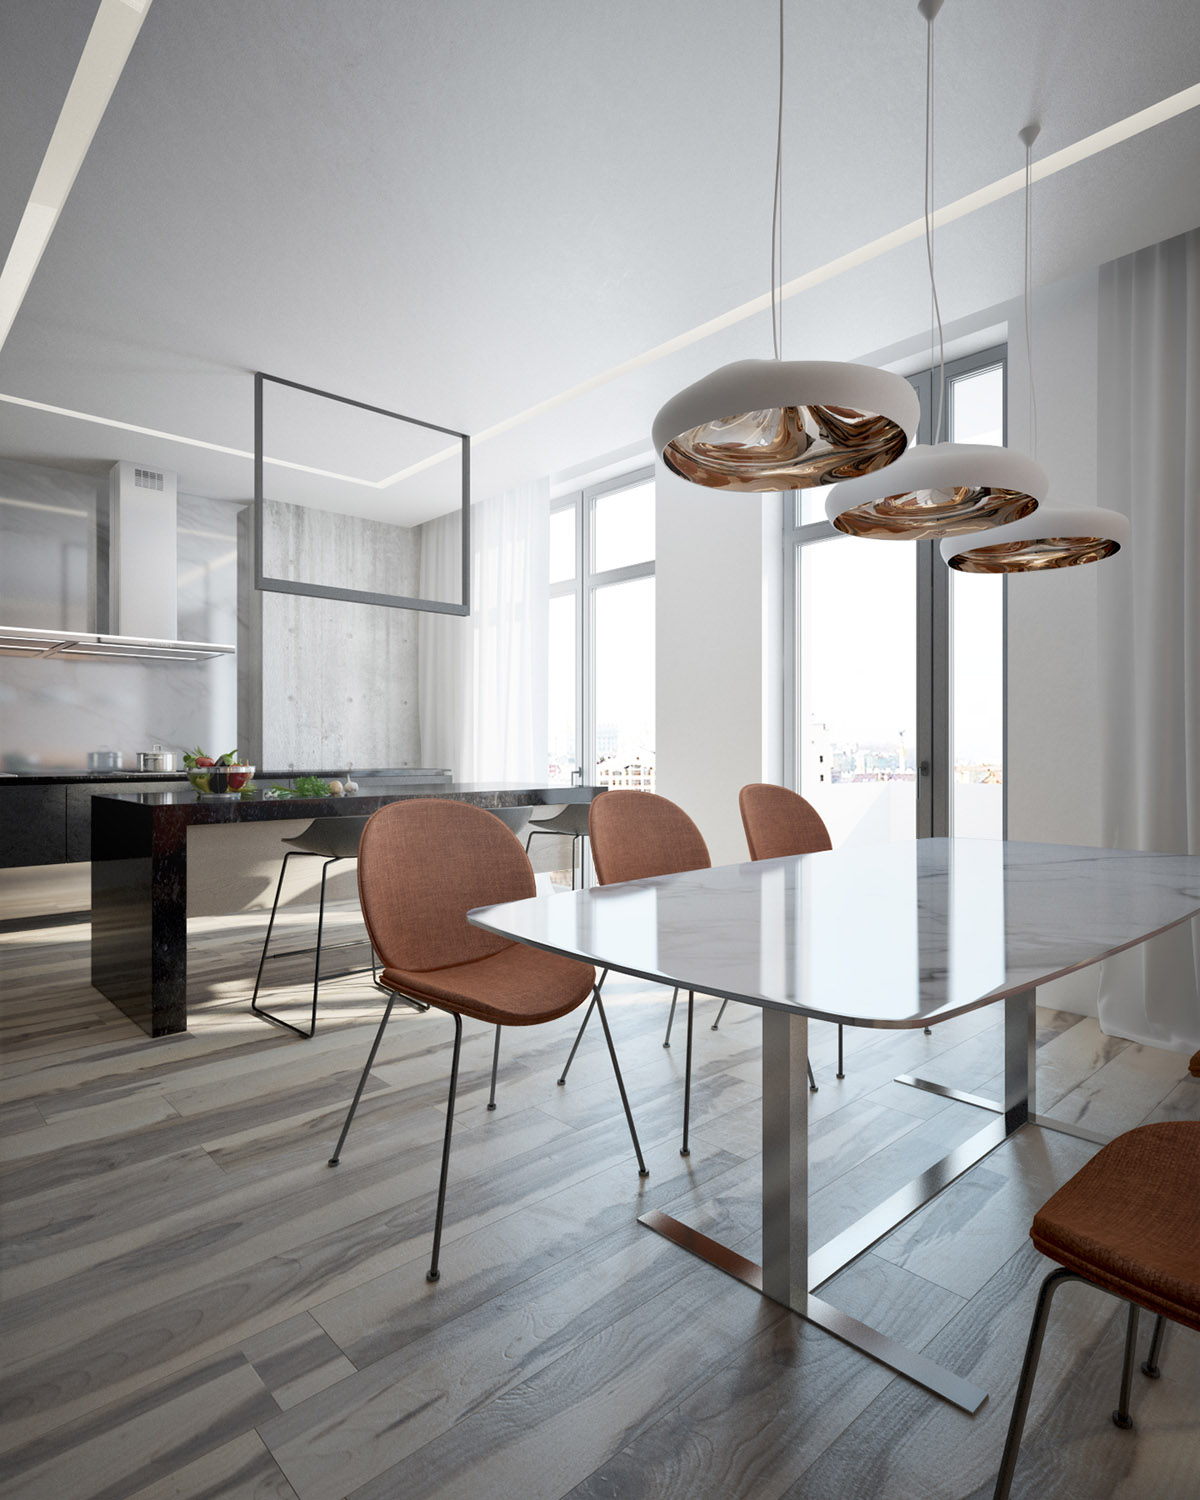 Copper Dining Room Pendant Lights - 4 interiors where wood and concrete meet